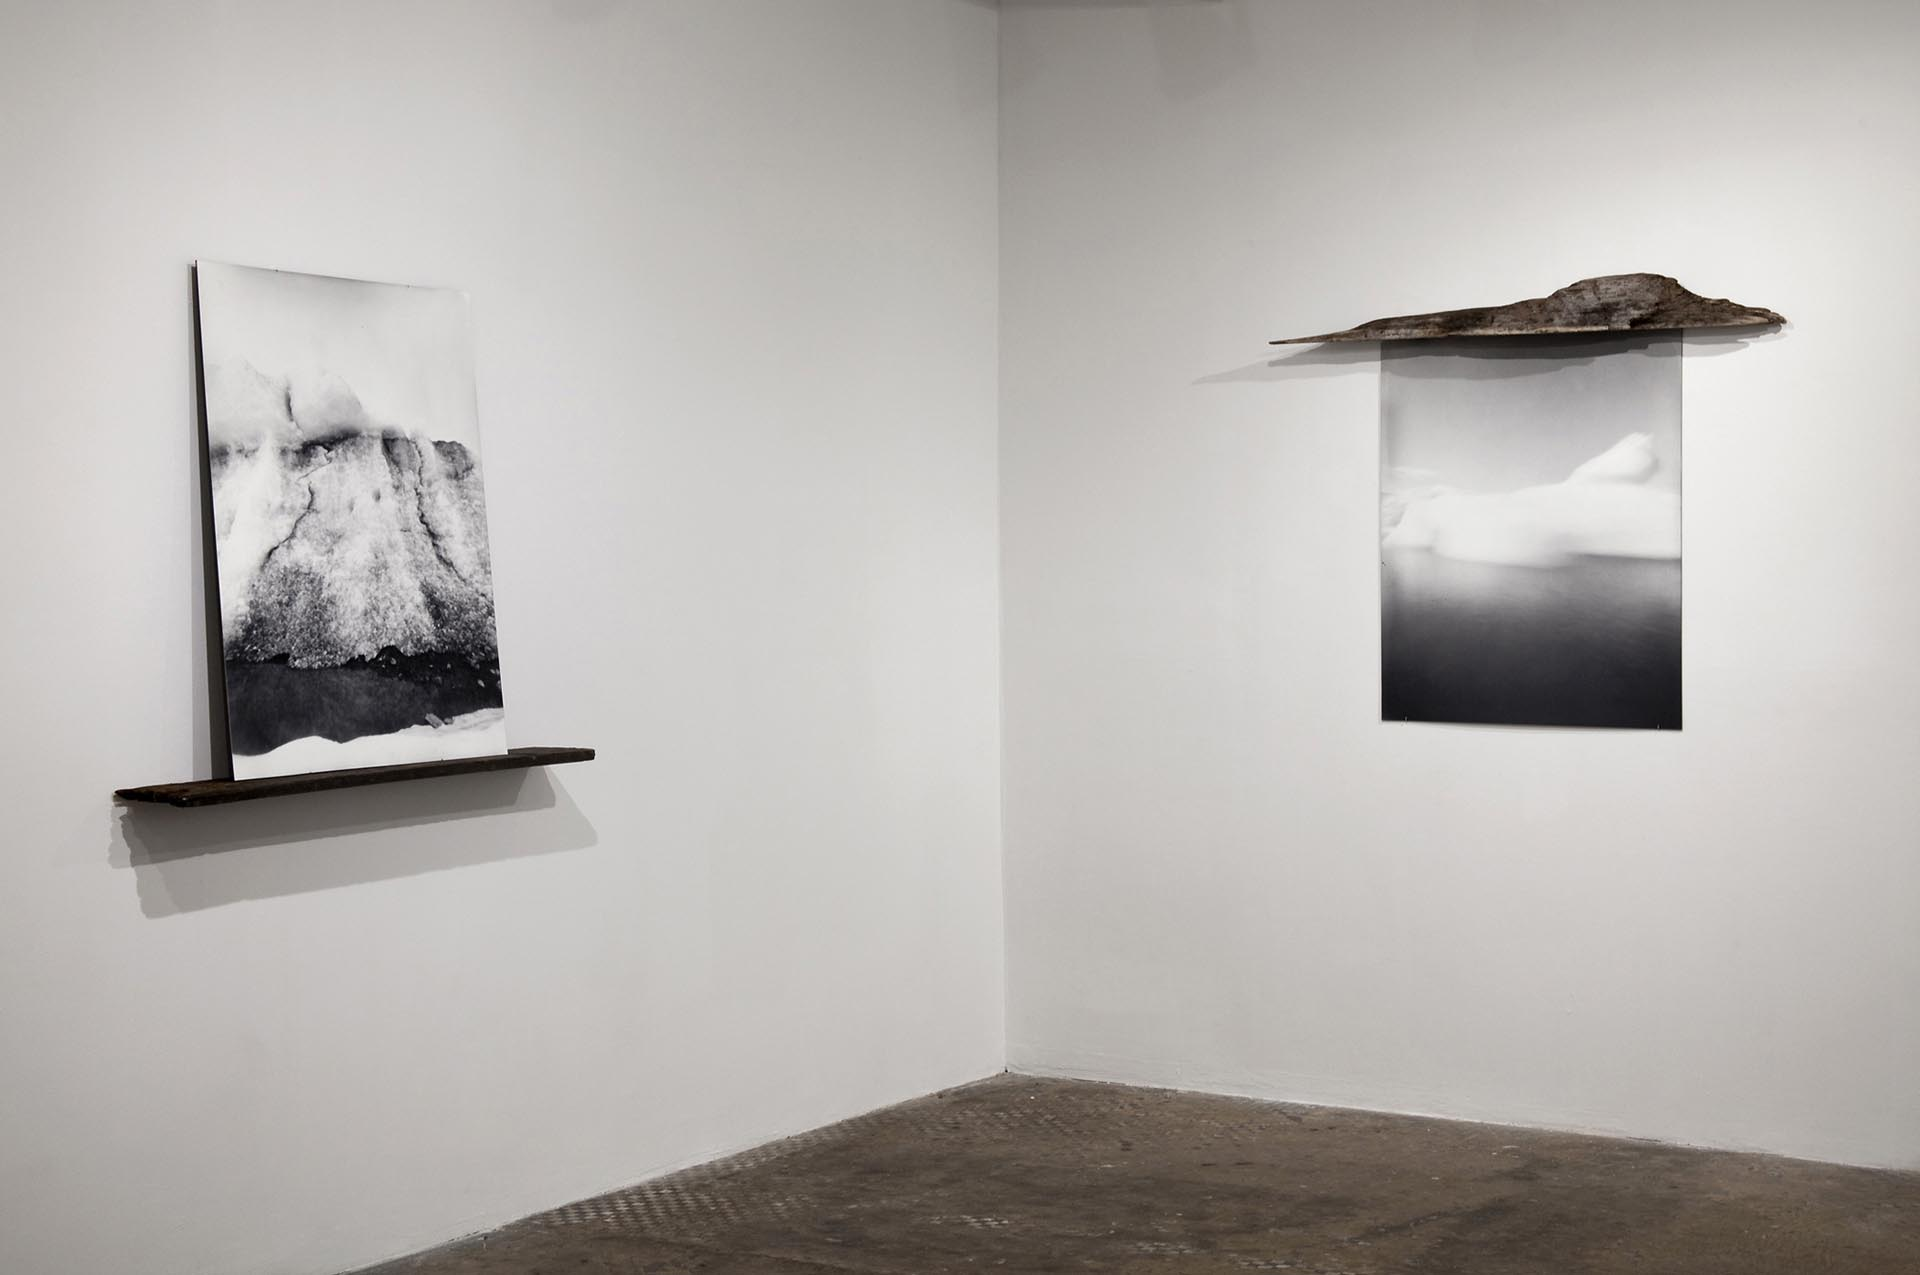 Vanessa Albury, Arctic, Future Relics, 2016 (installation shot from my solo show at Nurture Art,) Selenium-toned Gelatin Silver Prints mounted to museum board and wood, Room installation